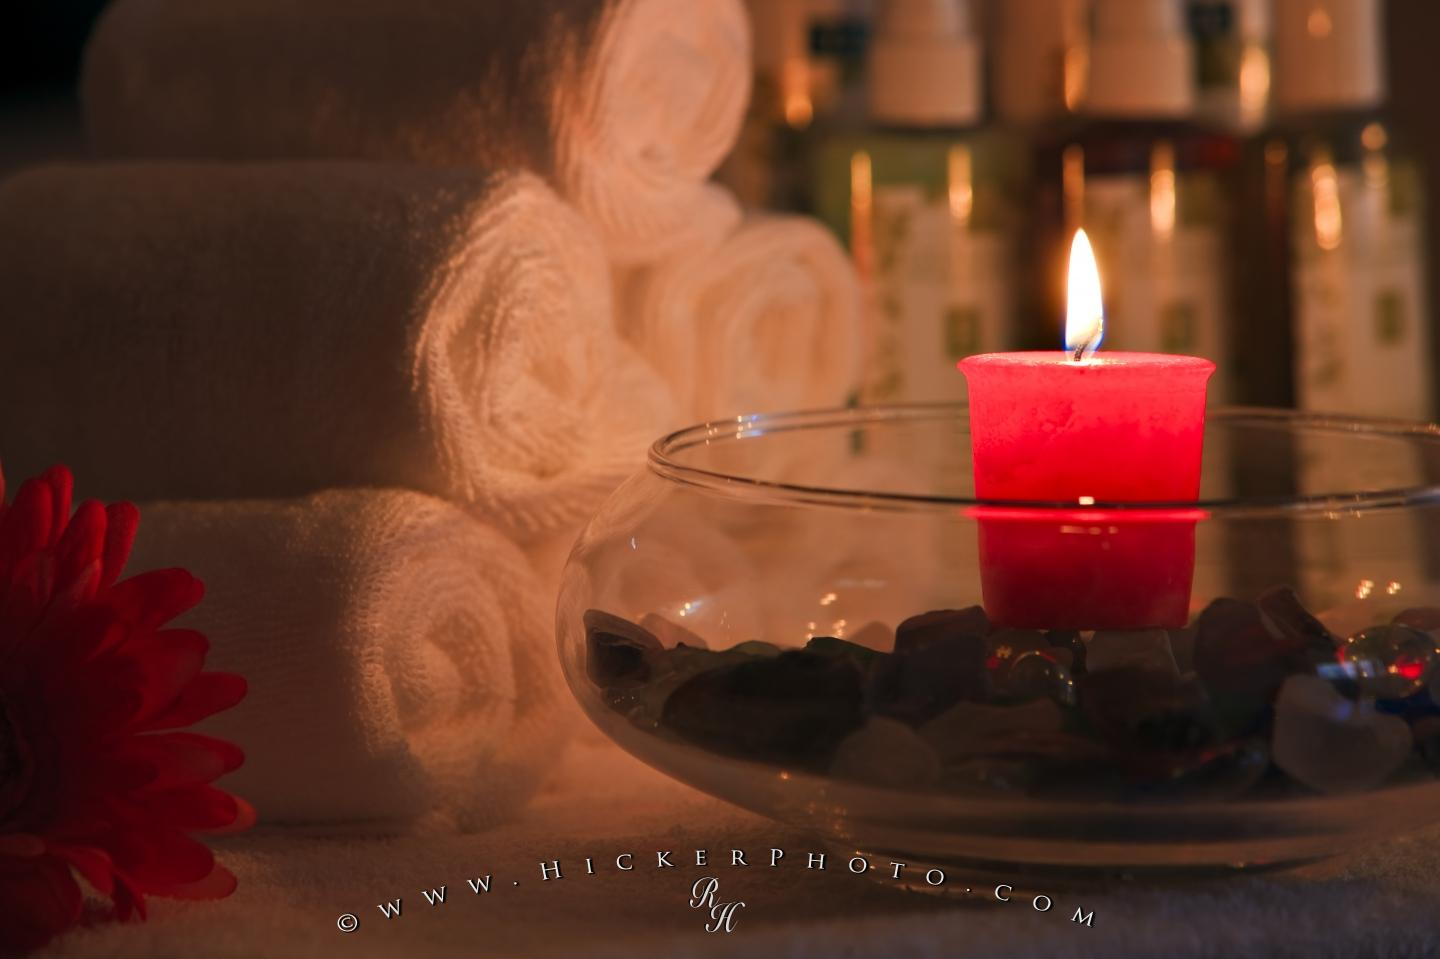 Free wallpaper background: Relaxing Red Candle Day Spa Picture